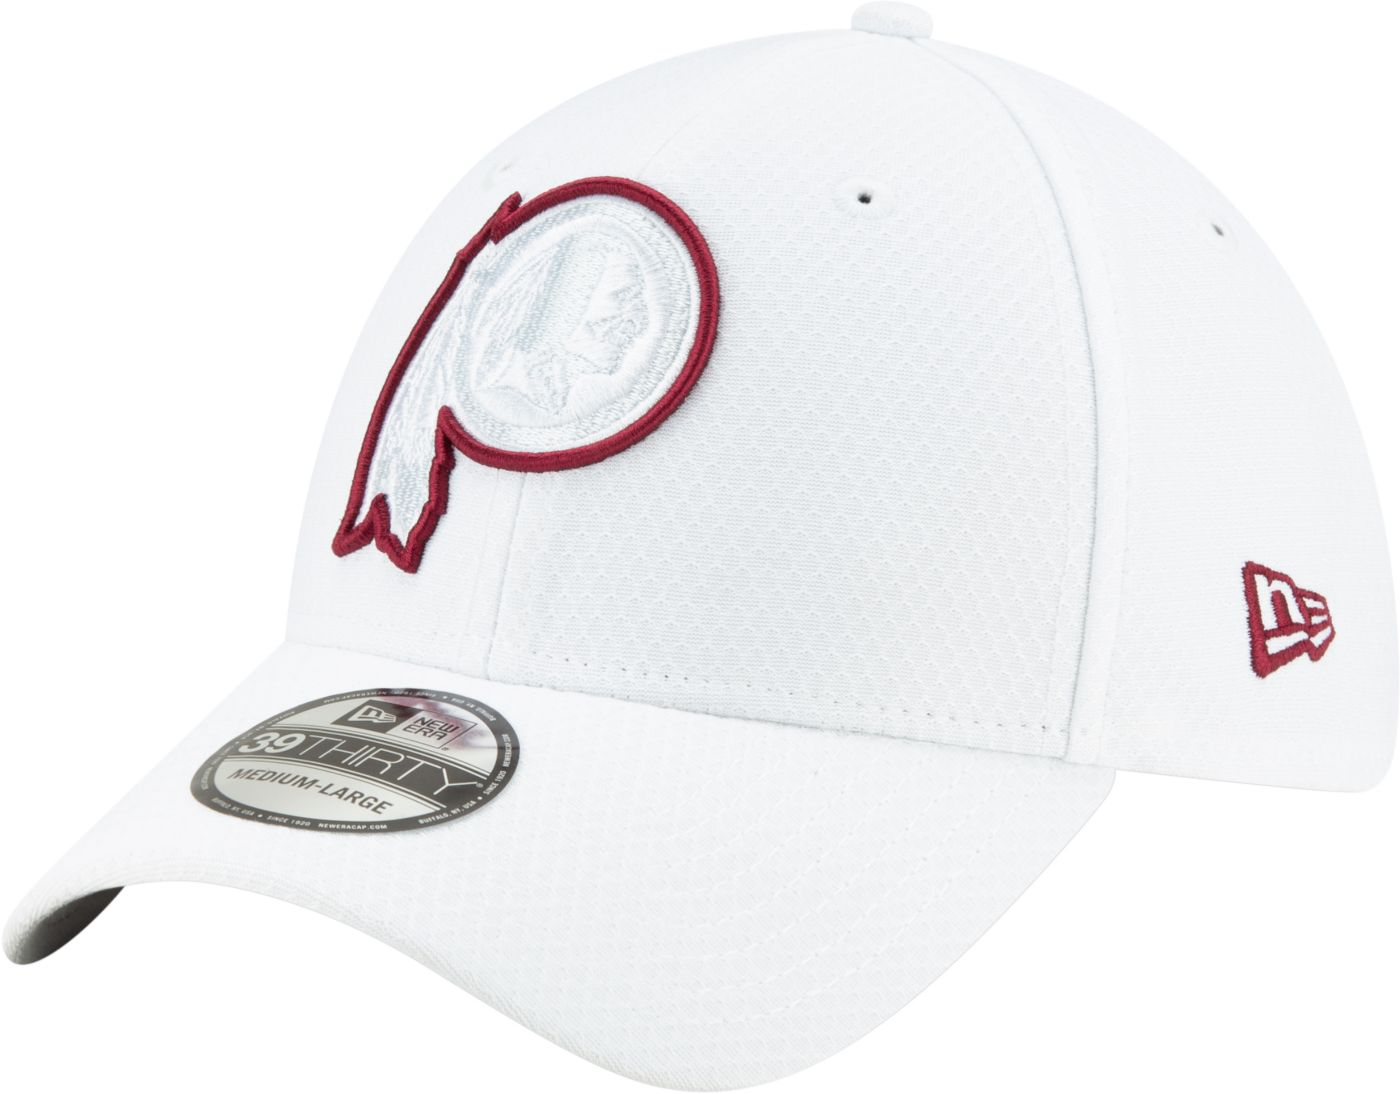 New Era Men's Washington Redskins Sideline 100th 39Thirty Stretch Fit White Hat